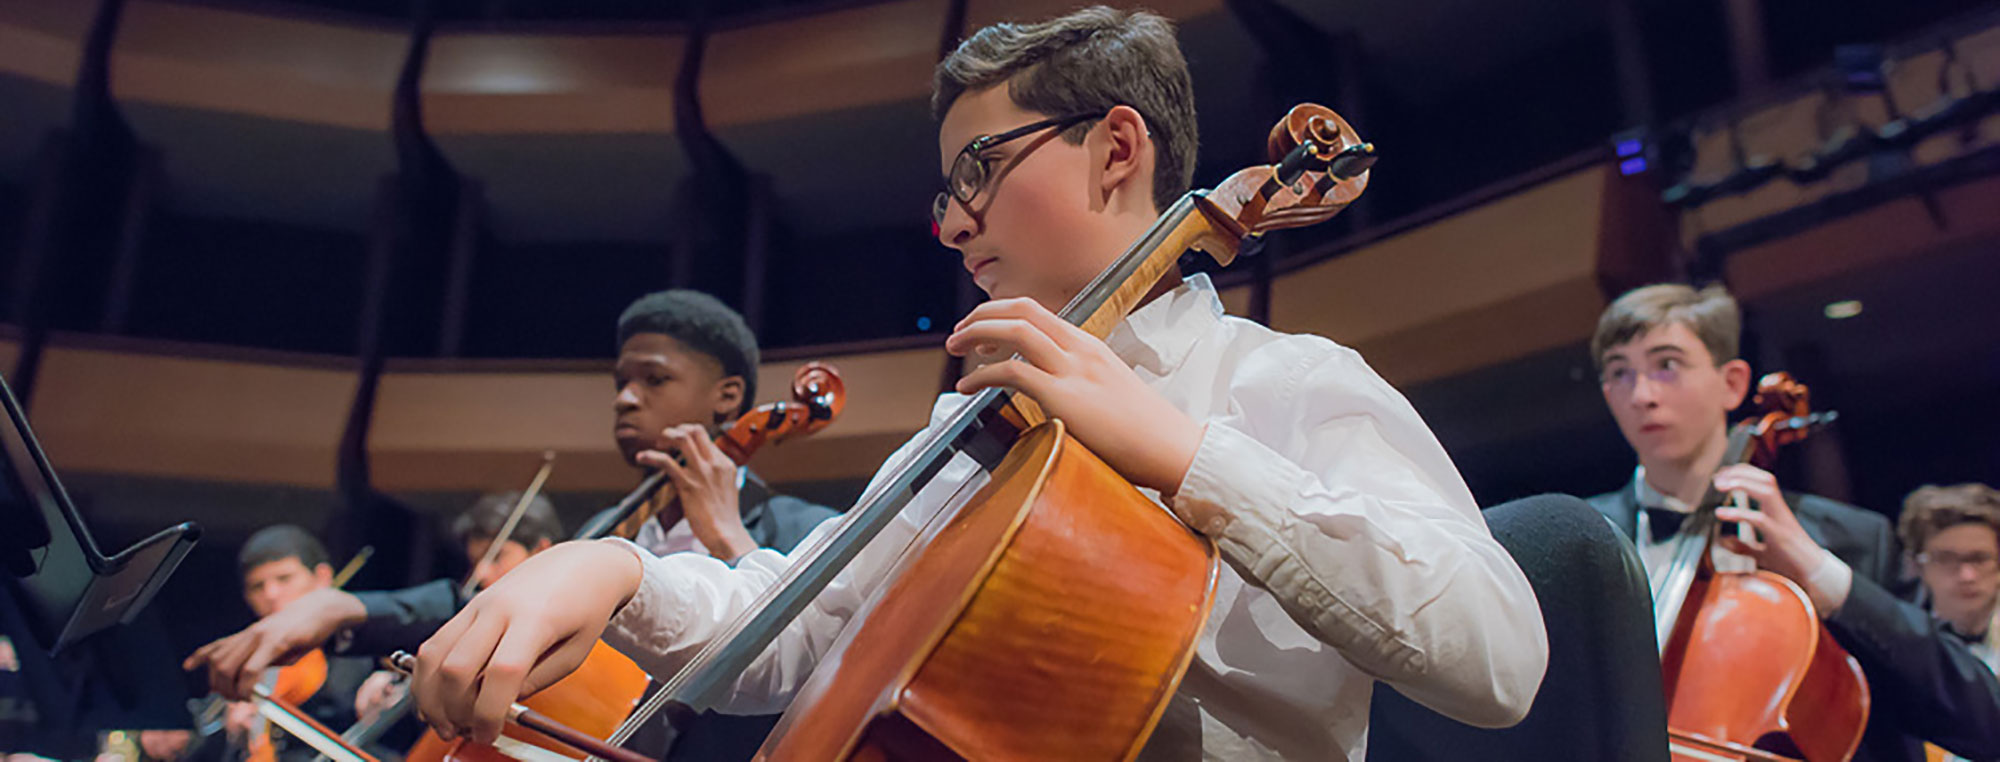 Young Class Playing Cello